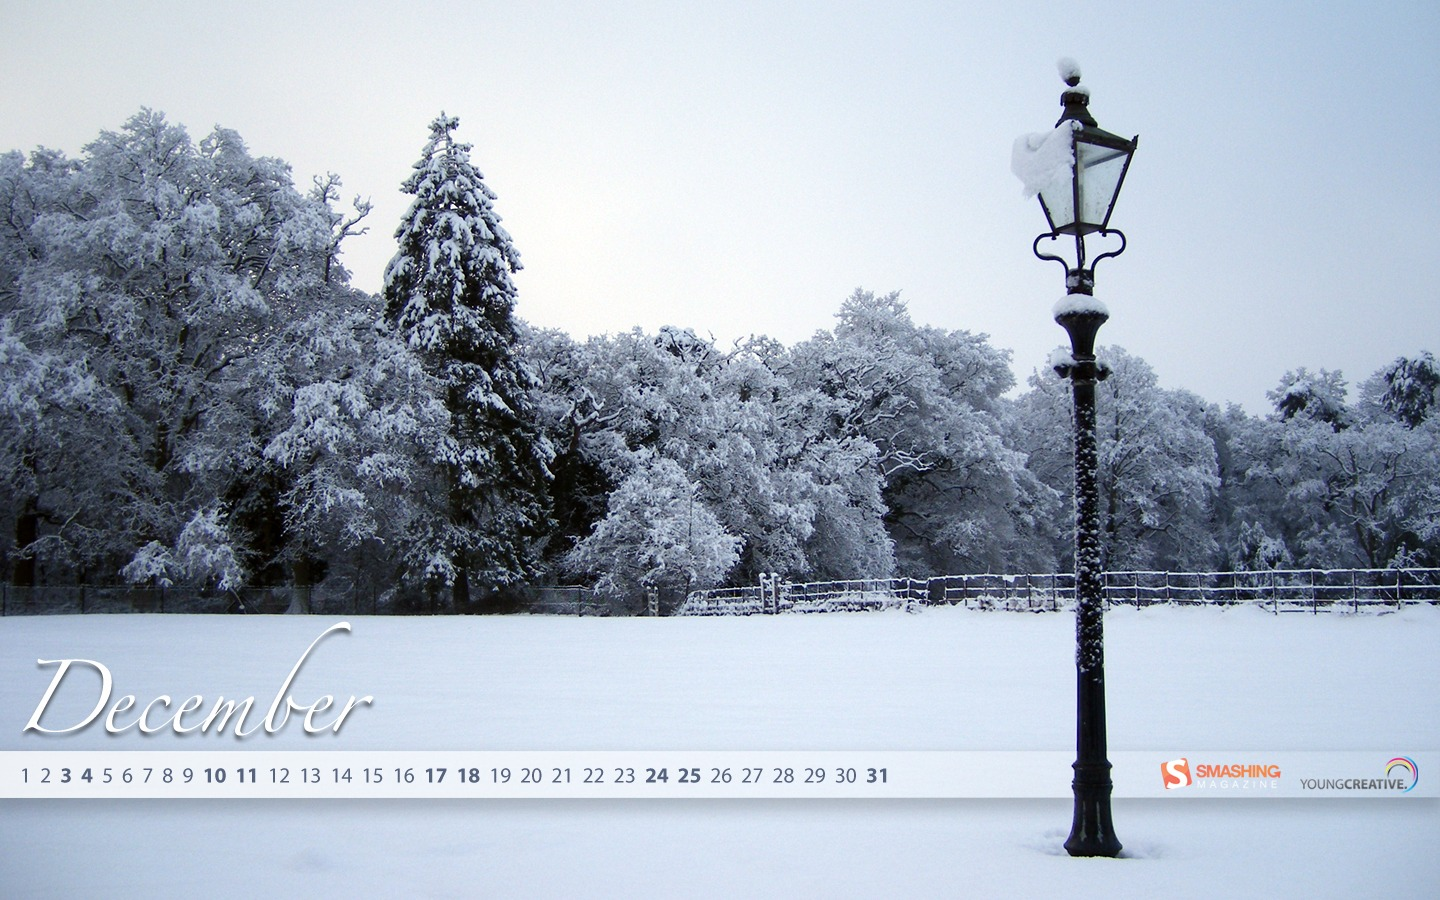 In January Calendar Wallpaper 31295